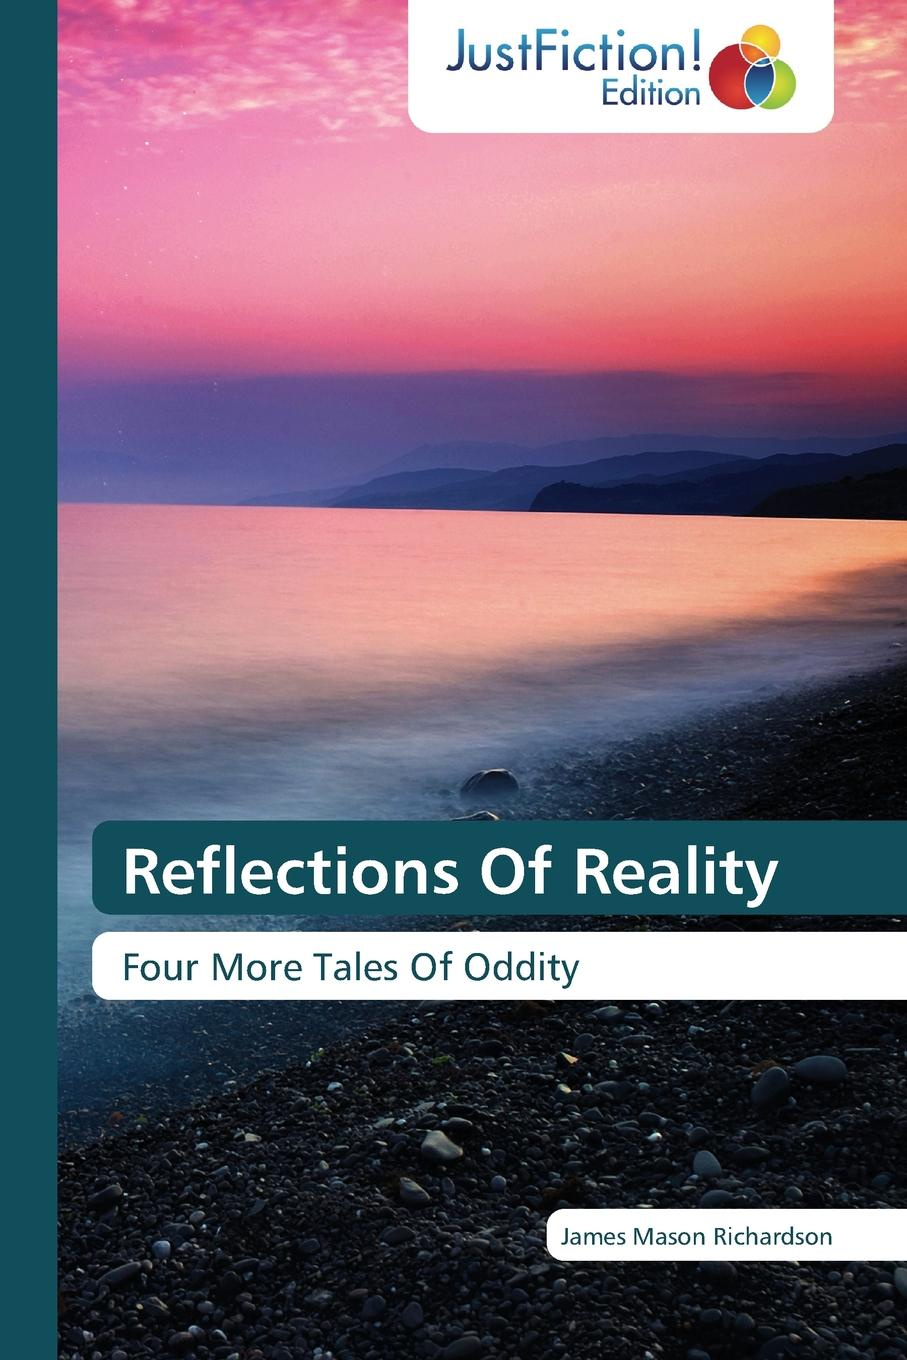 Richardson James Mason Reflections Of Reality vladimir kernerman the big green tent – we under it reflections and comments